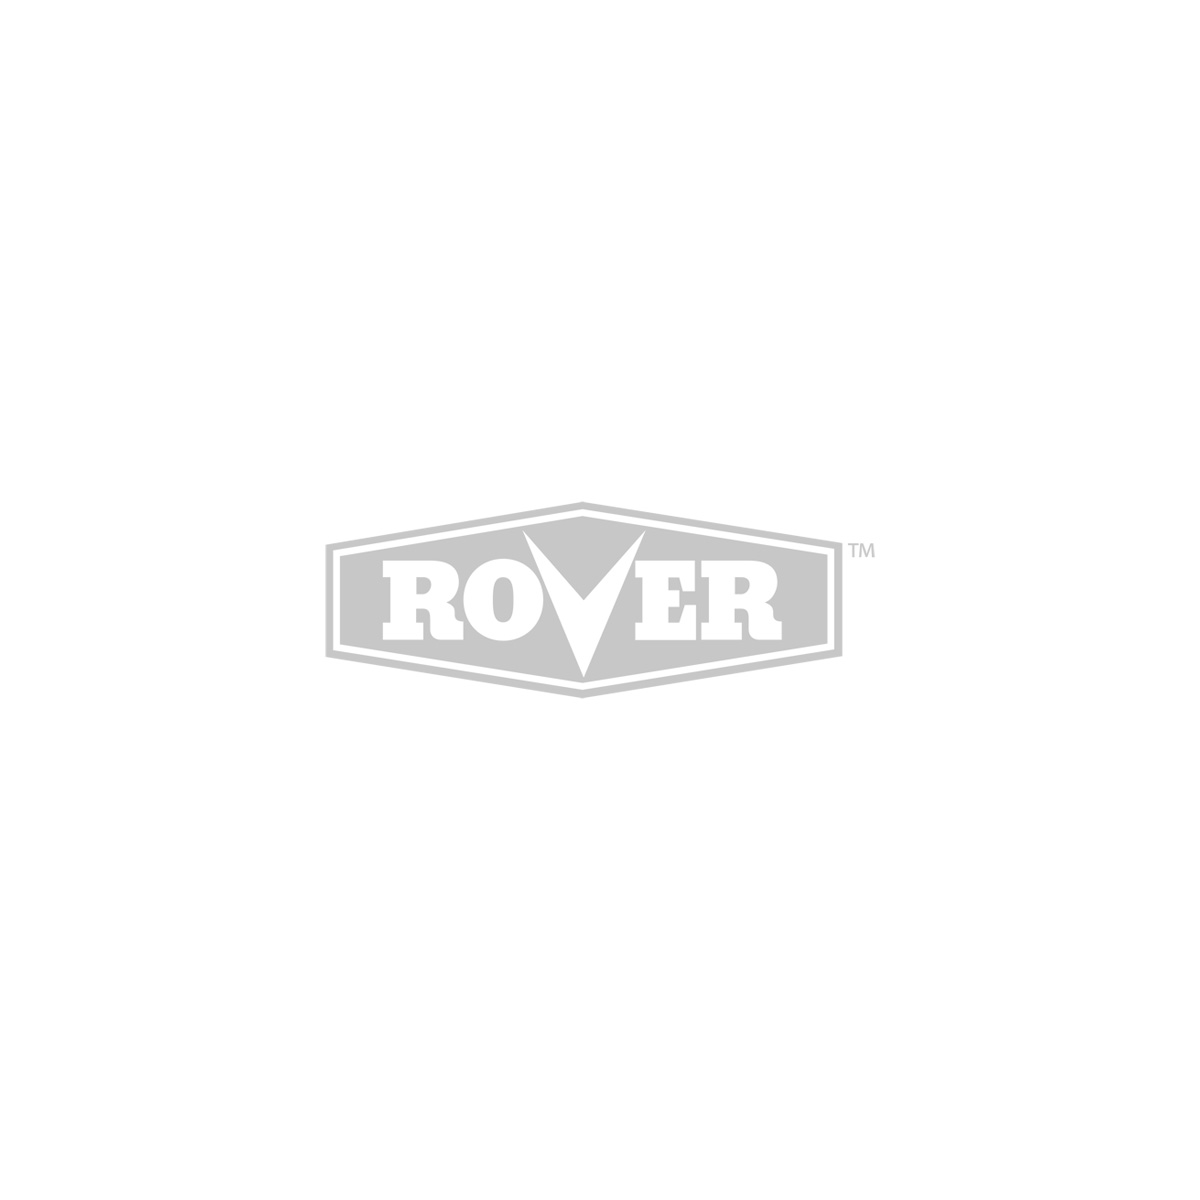 Strong bump feed head, pre-loaded with with 2.4mm trimmer line